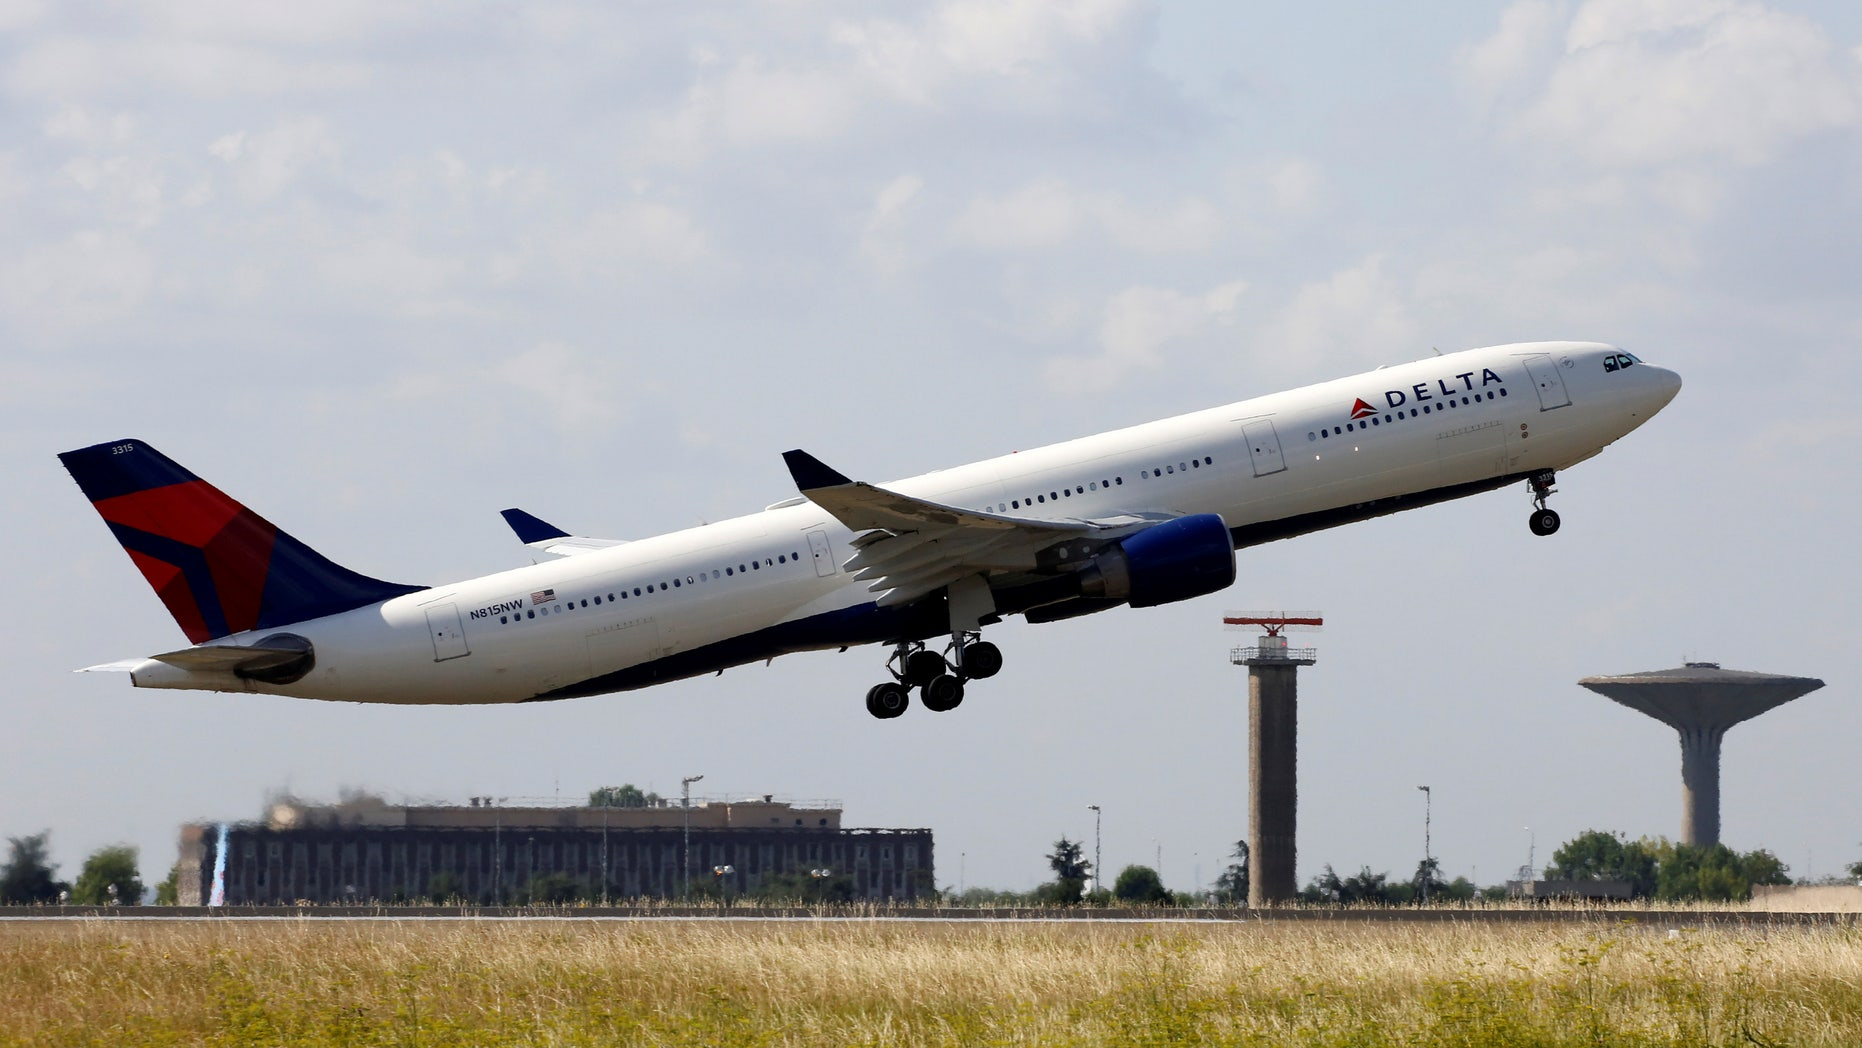 A Delta Air Lines Airbus A330 aircraft takes off at the Charles de Gaulle airport in Roissy, France, August 9, 2016.